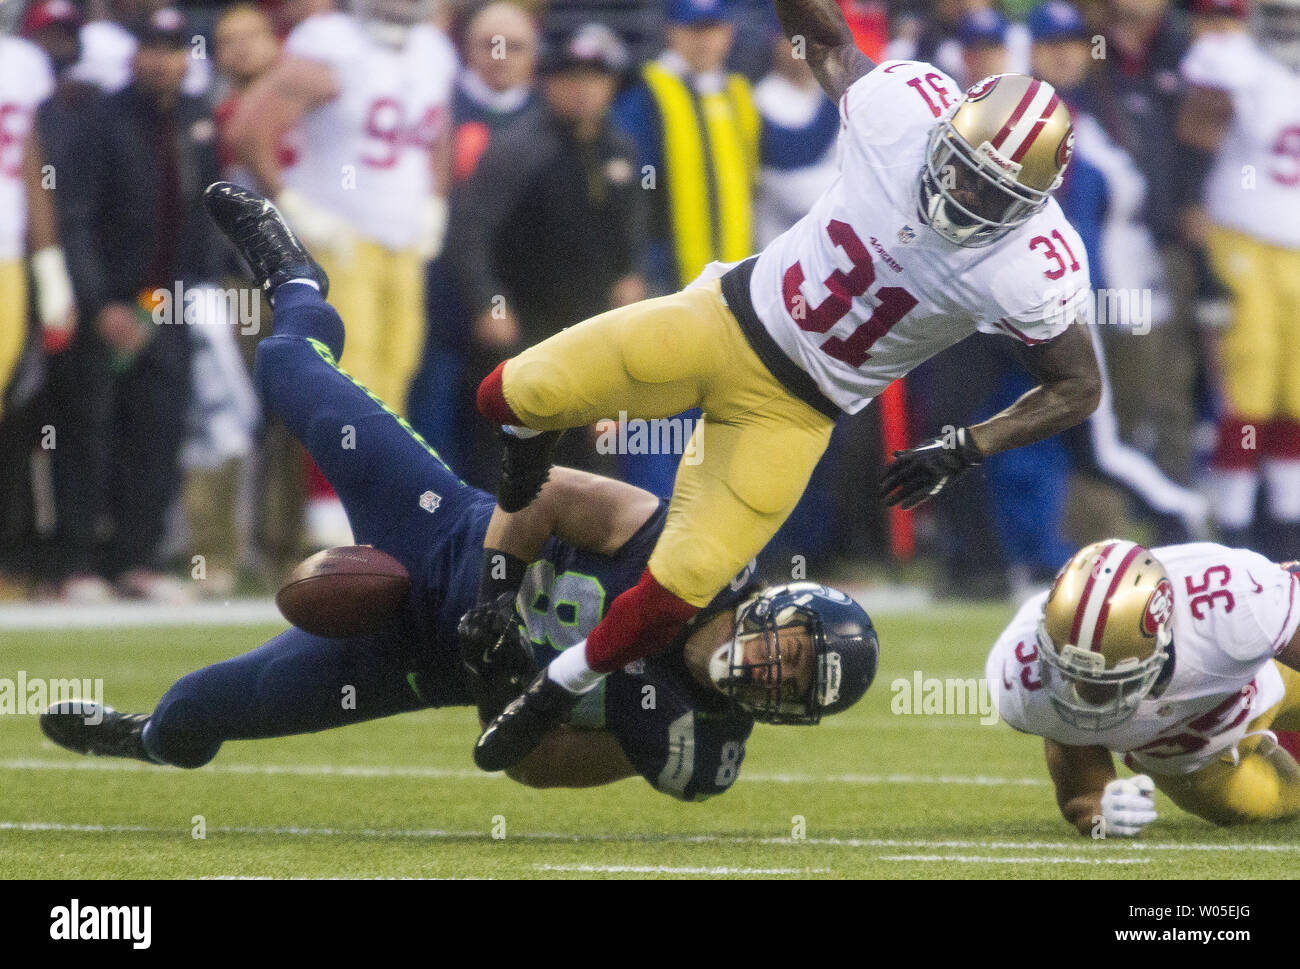 a1834957 Seattle Seahawks tight end Luke Wilson (82) looses the ball after ...